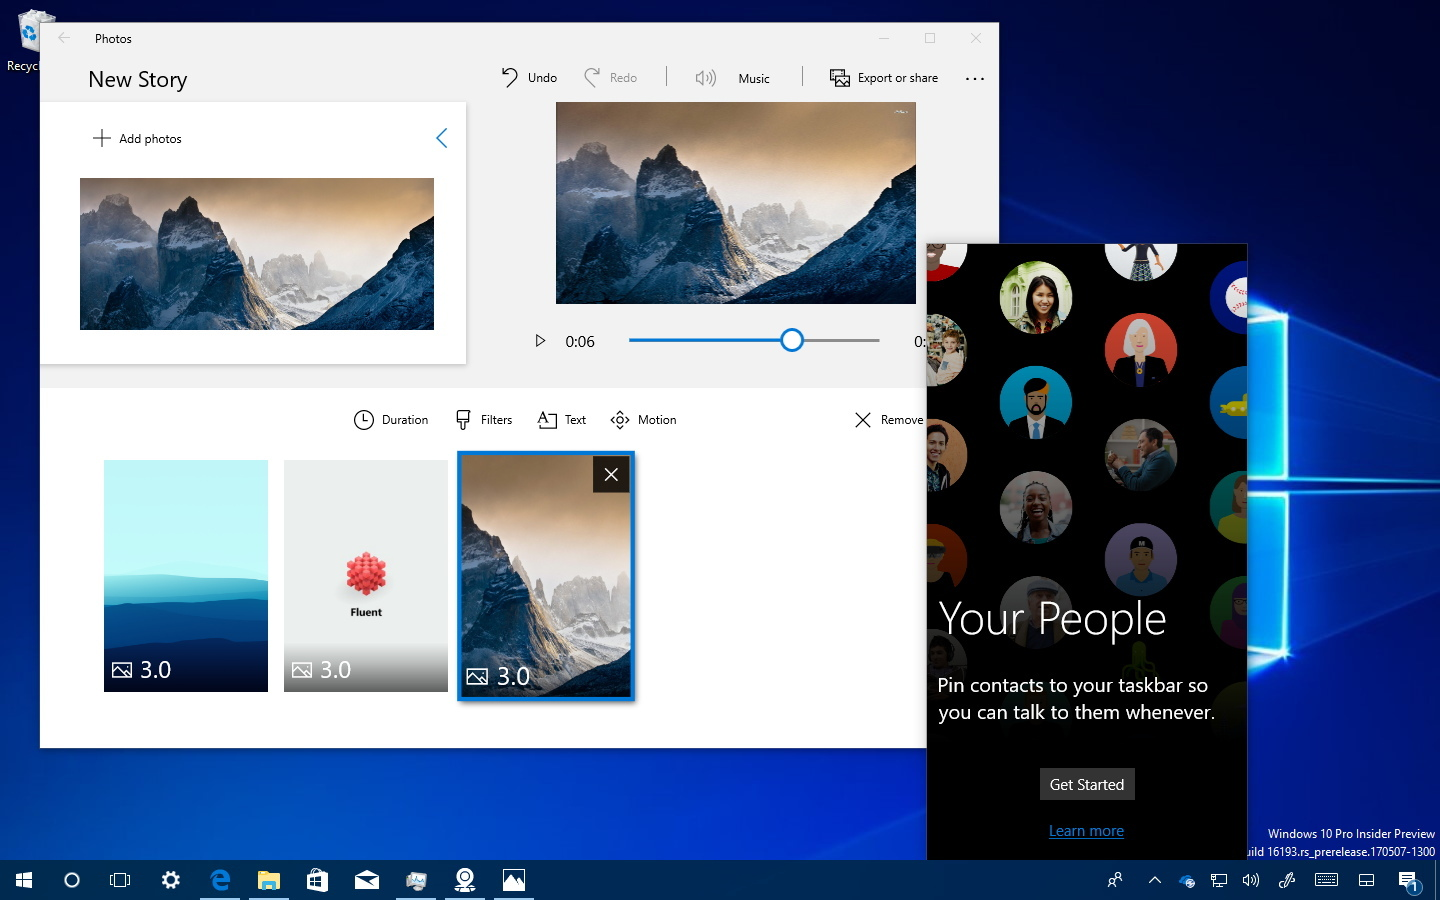 Windows 10 Fall Creators Update features